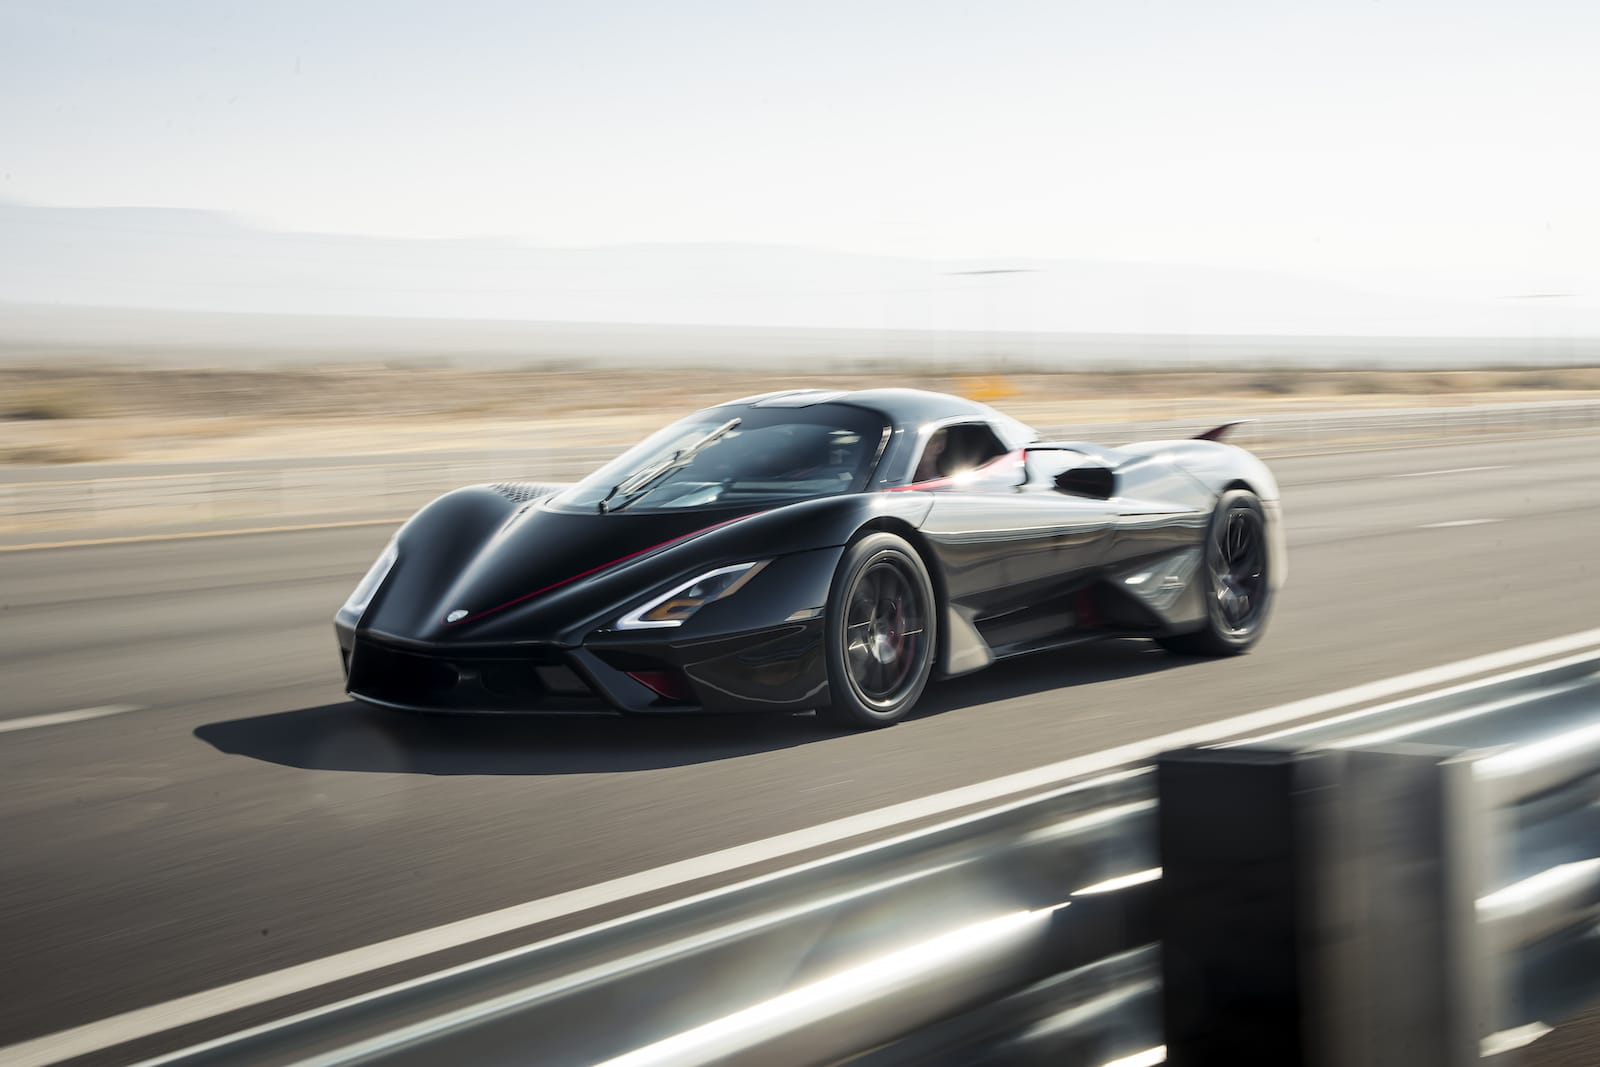 The SSC Tuatara set four new records including fastest production vehicle on a 7-mile stretch of Nevada highway